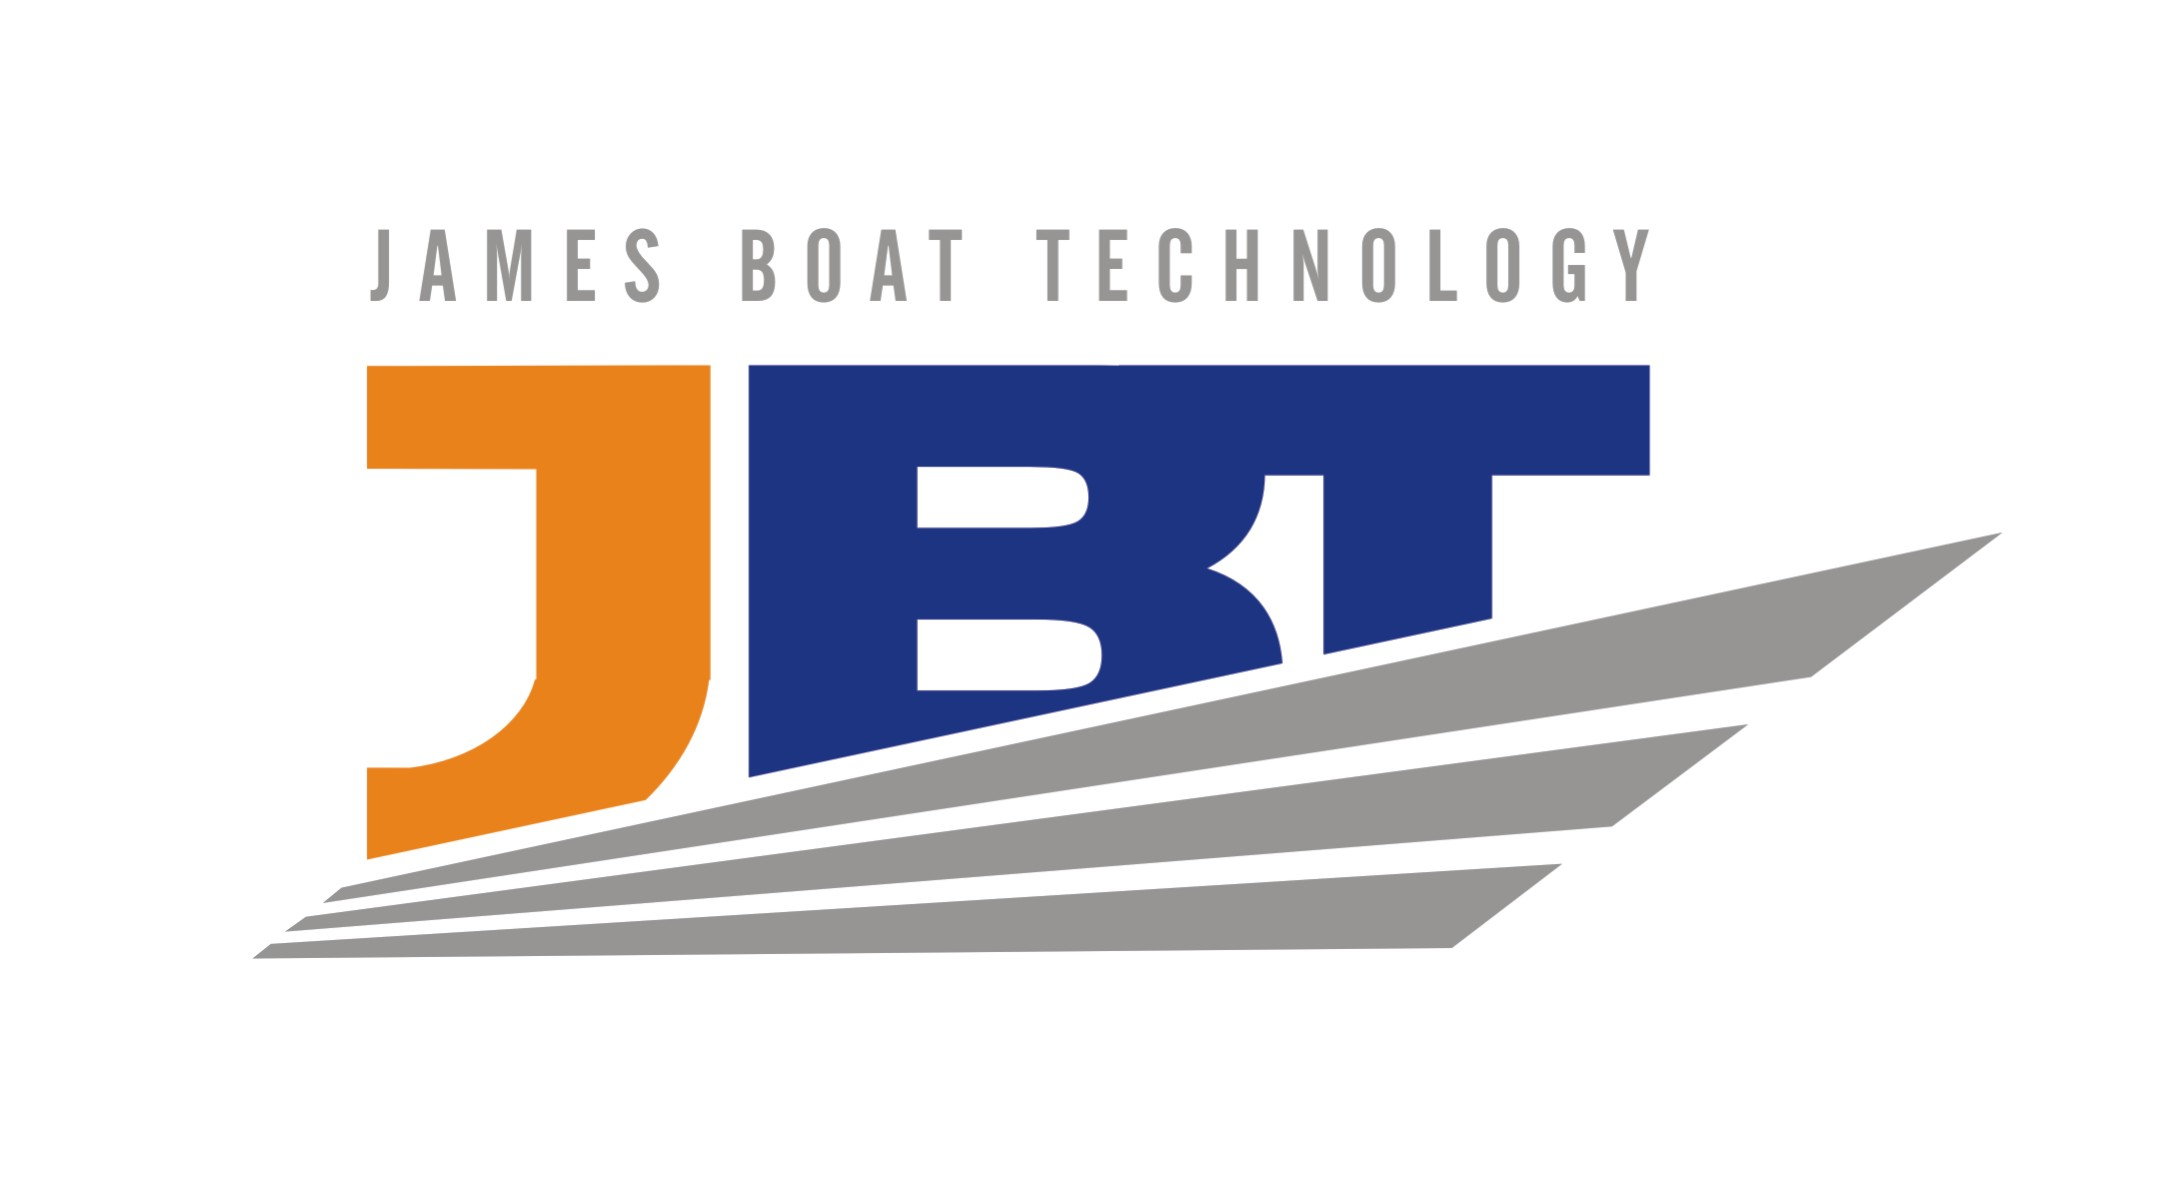 James Boat